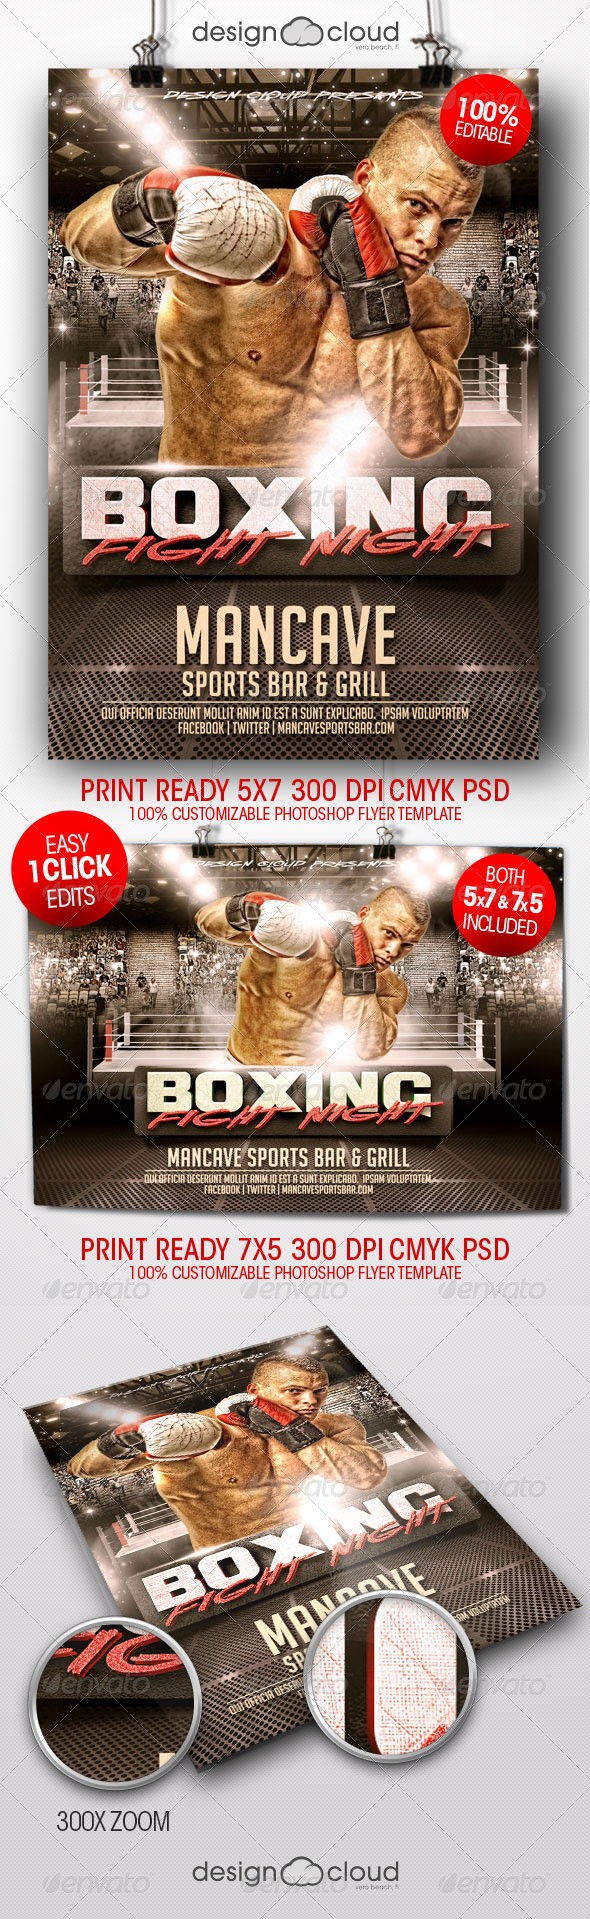 Boxing Fight Night Flyer Templates by Design-Cloud | GraphicRiver